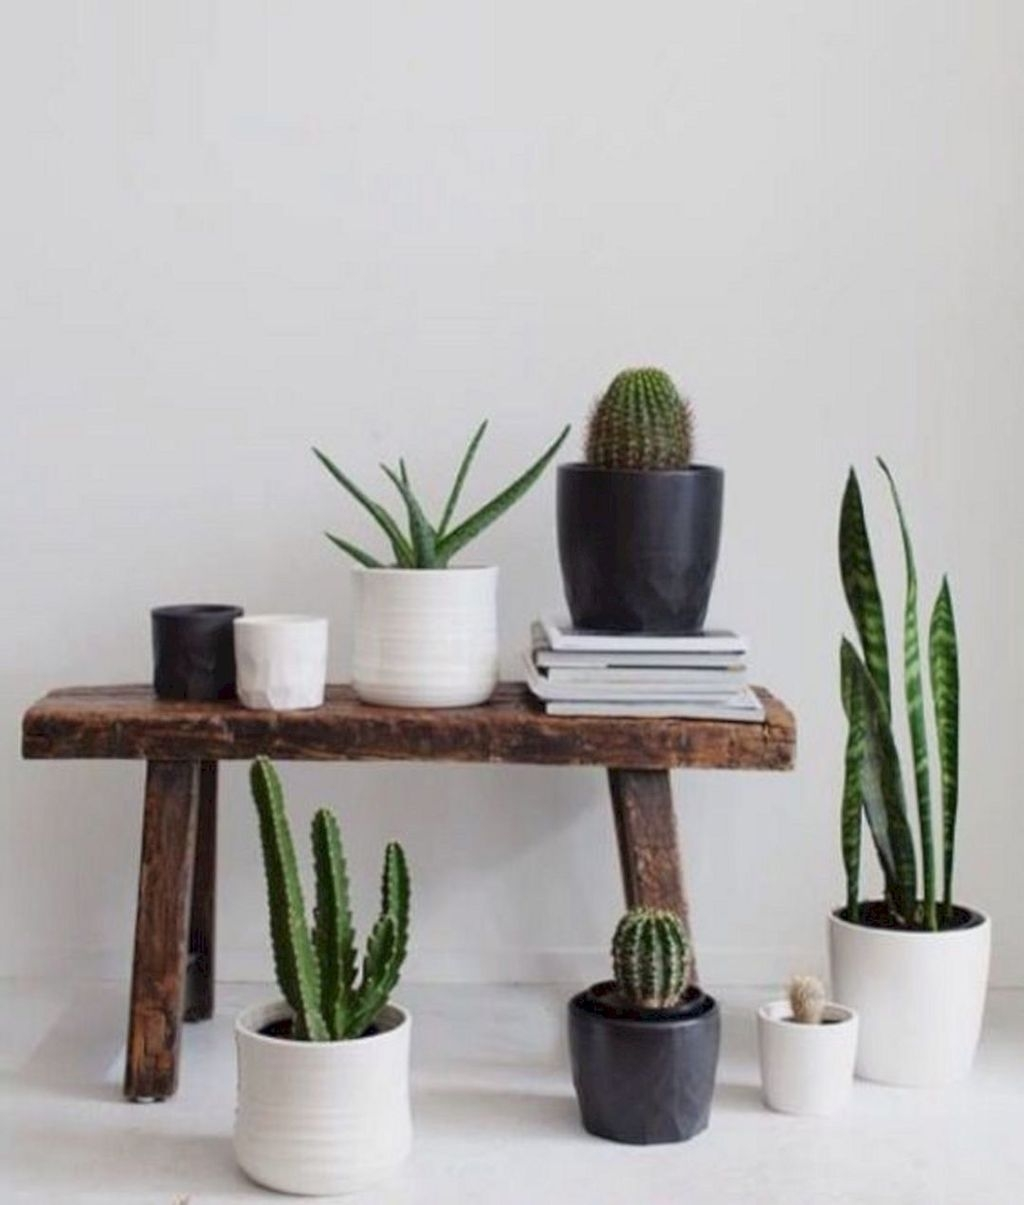 Cool Small Cactus Ideas For Interior Home Design20